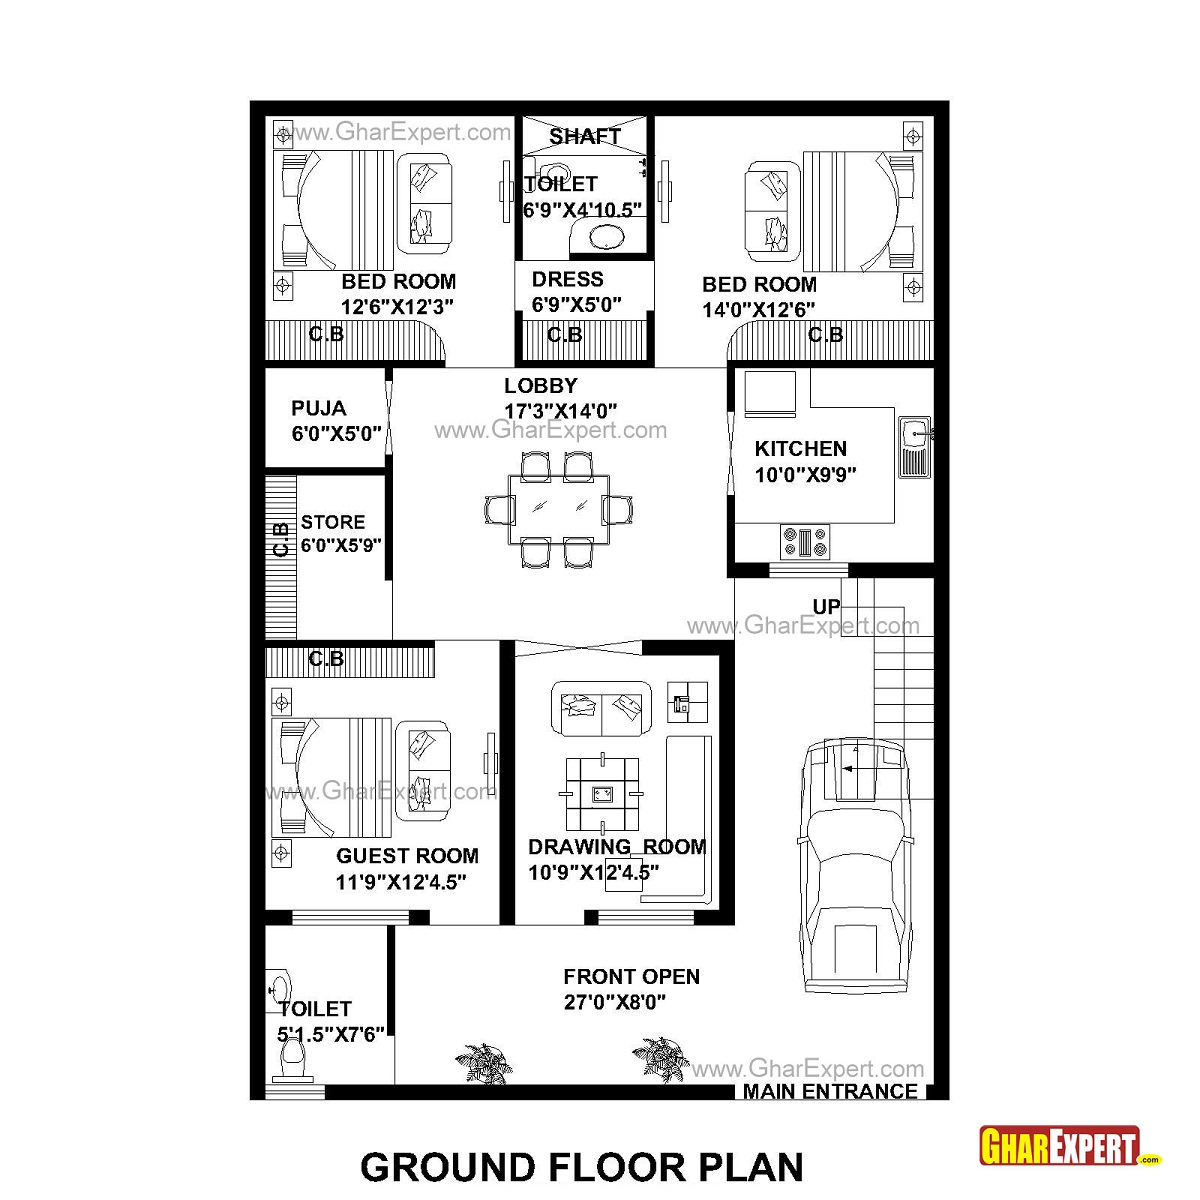 House Plan For 33 Feet By 40 Feet Plot Plot Size 147: House Plan For 35 Feet By 50 Feet Plot (Plot Size 195